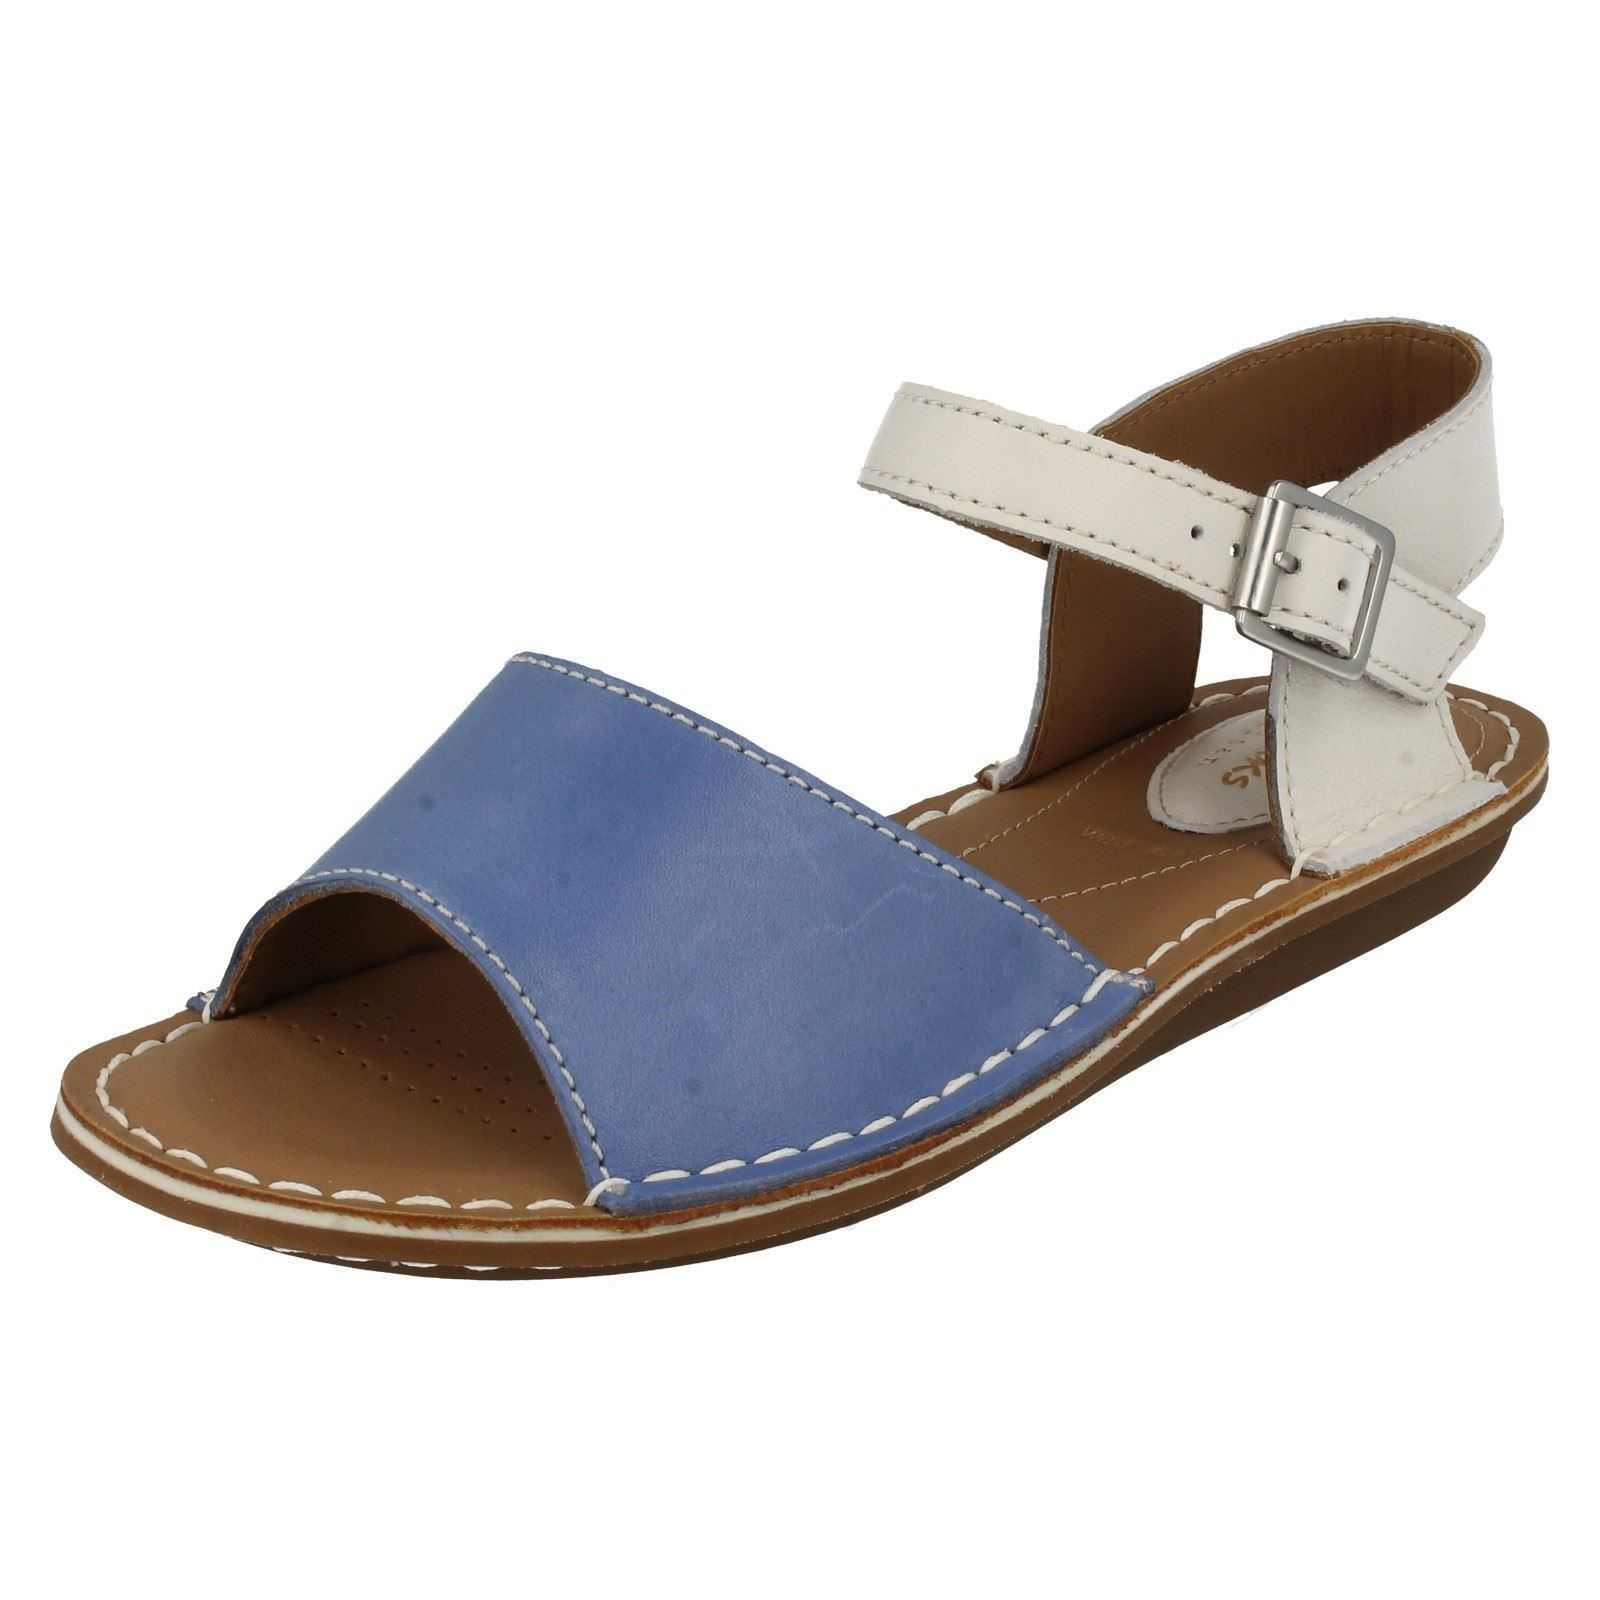 f94cc0671 Women s Clarks Tustin Sinitta Sandals in Blue UK 6.5   EU 40. About this  product. Picture 1 of 8  Picture 2 of 8 ...